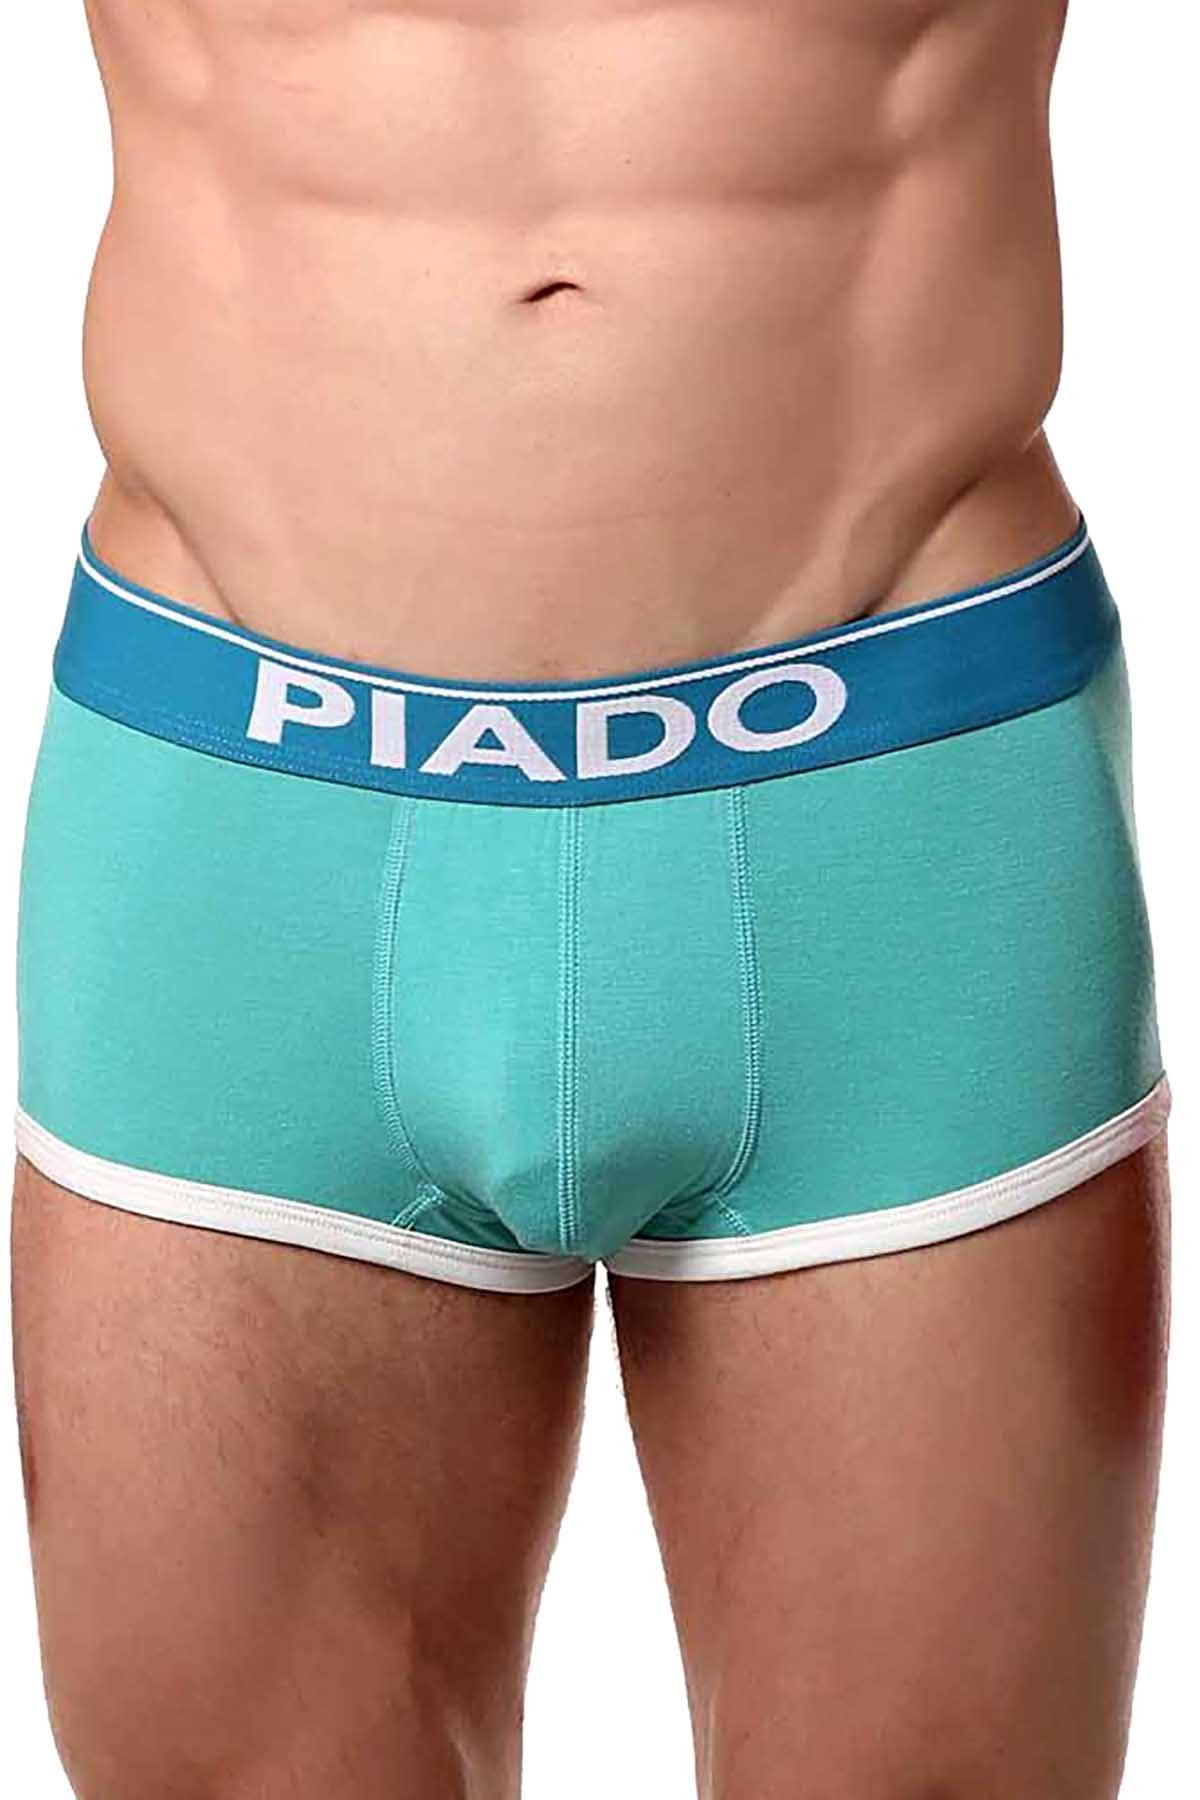 Piado Turquoise/Teal Nevis Trunk